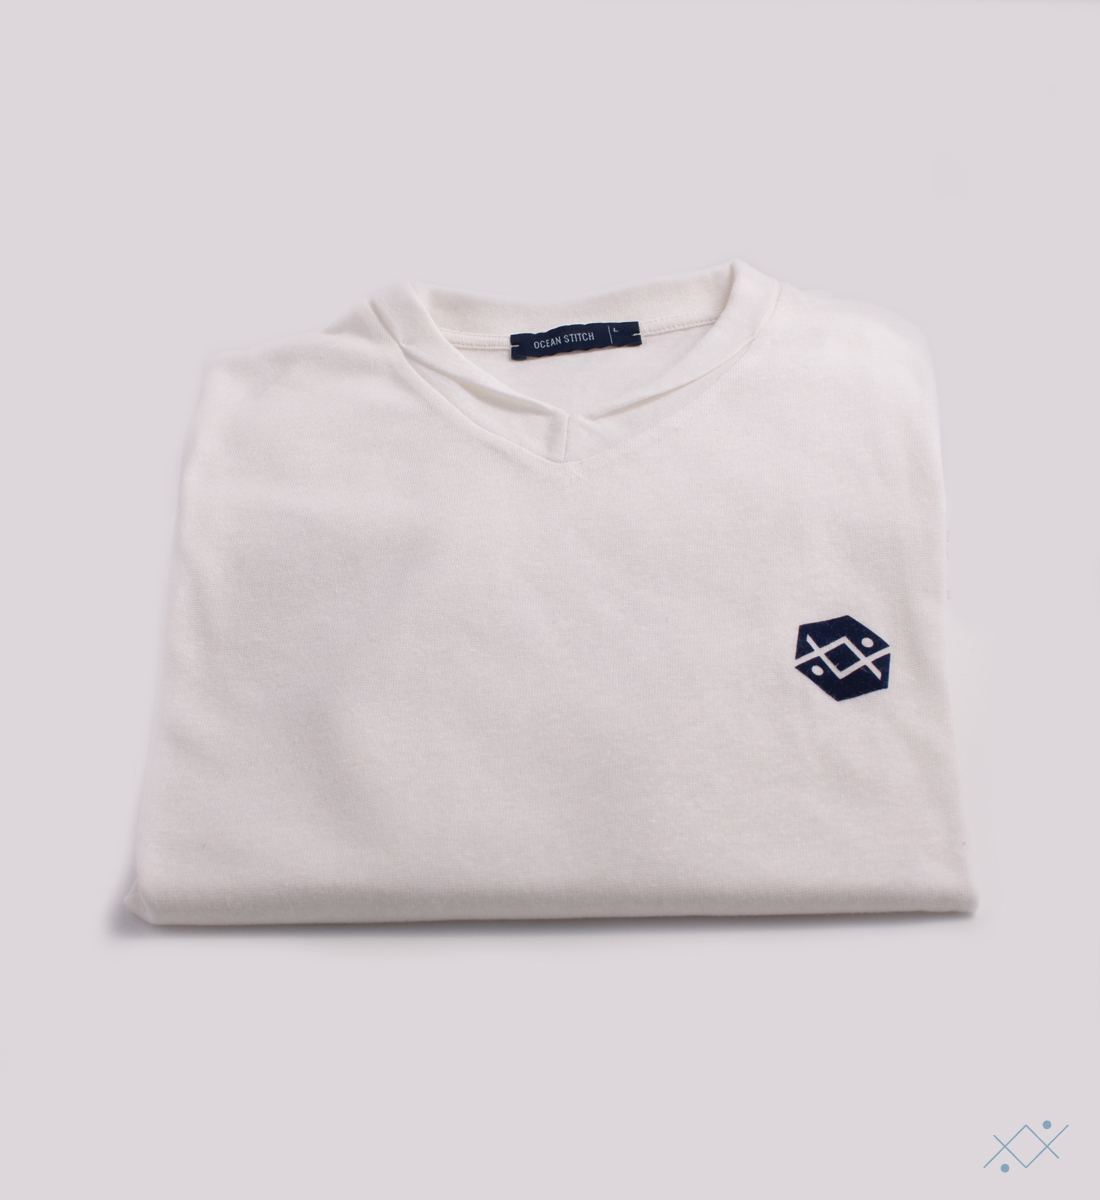 Classic white knitwear with applied velvet logo on light blue - view2